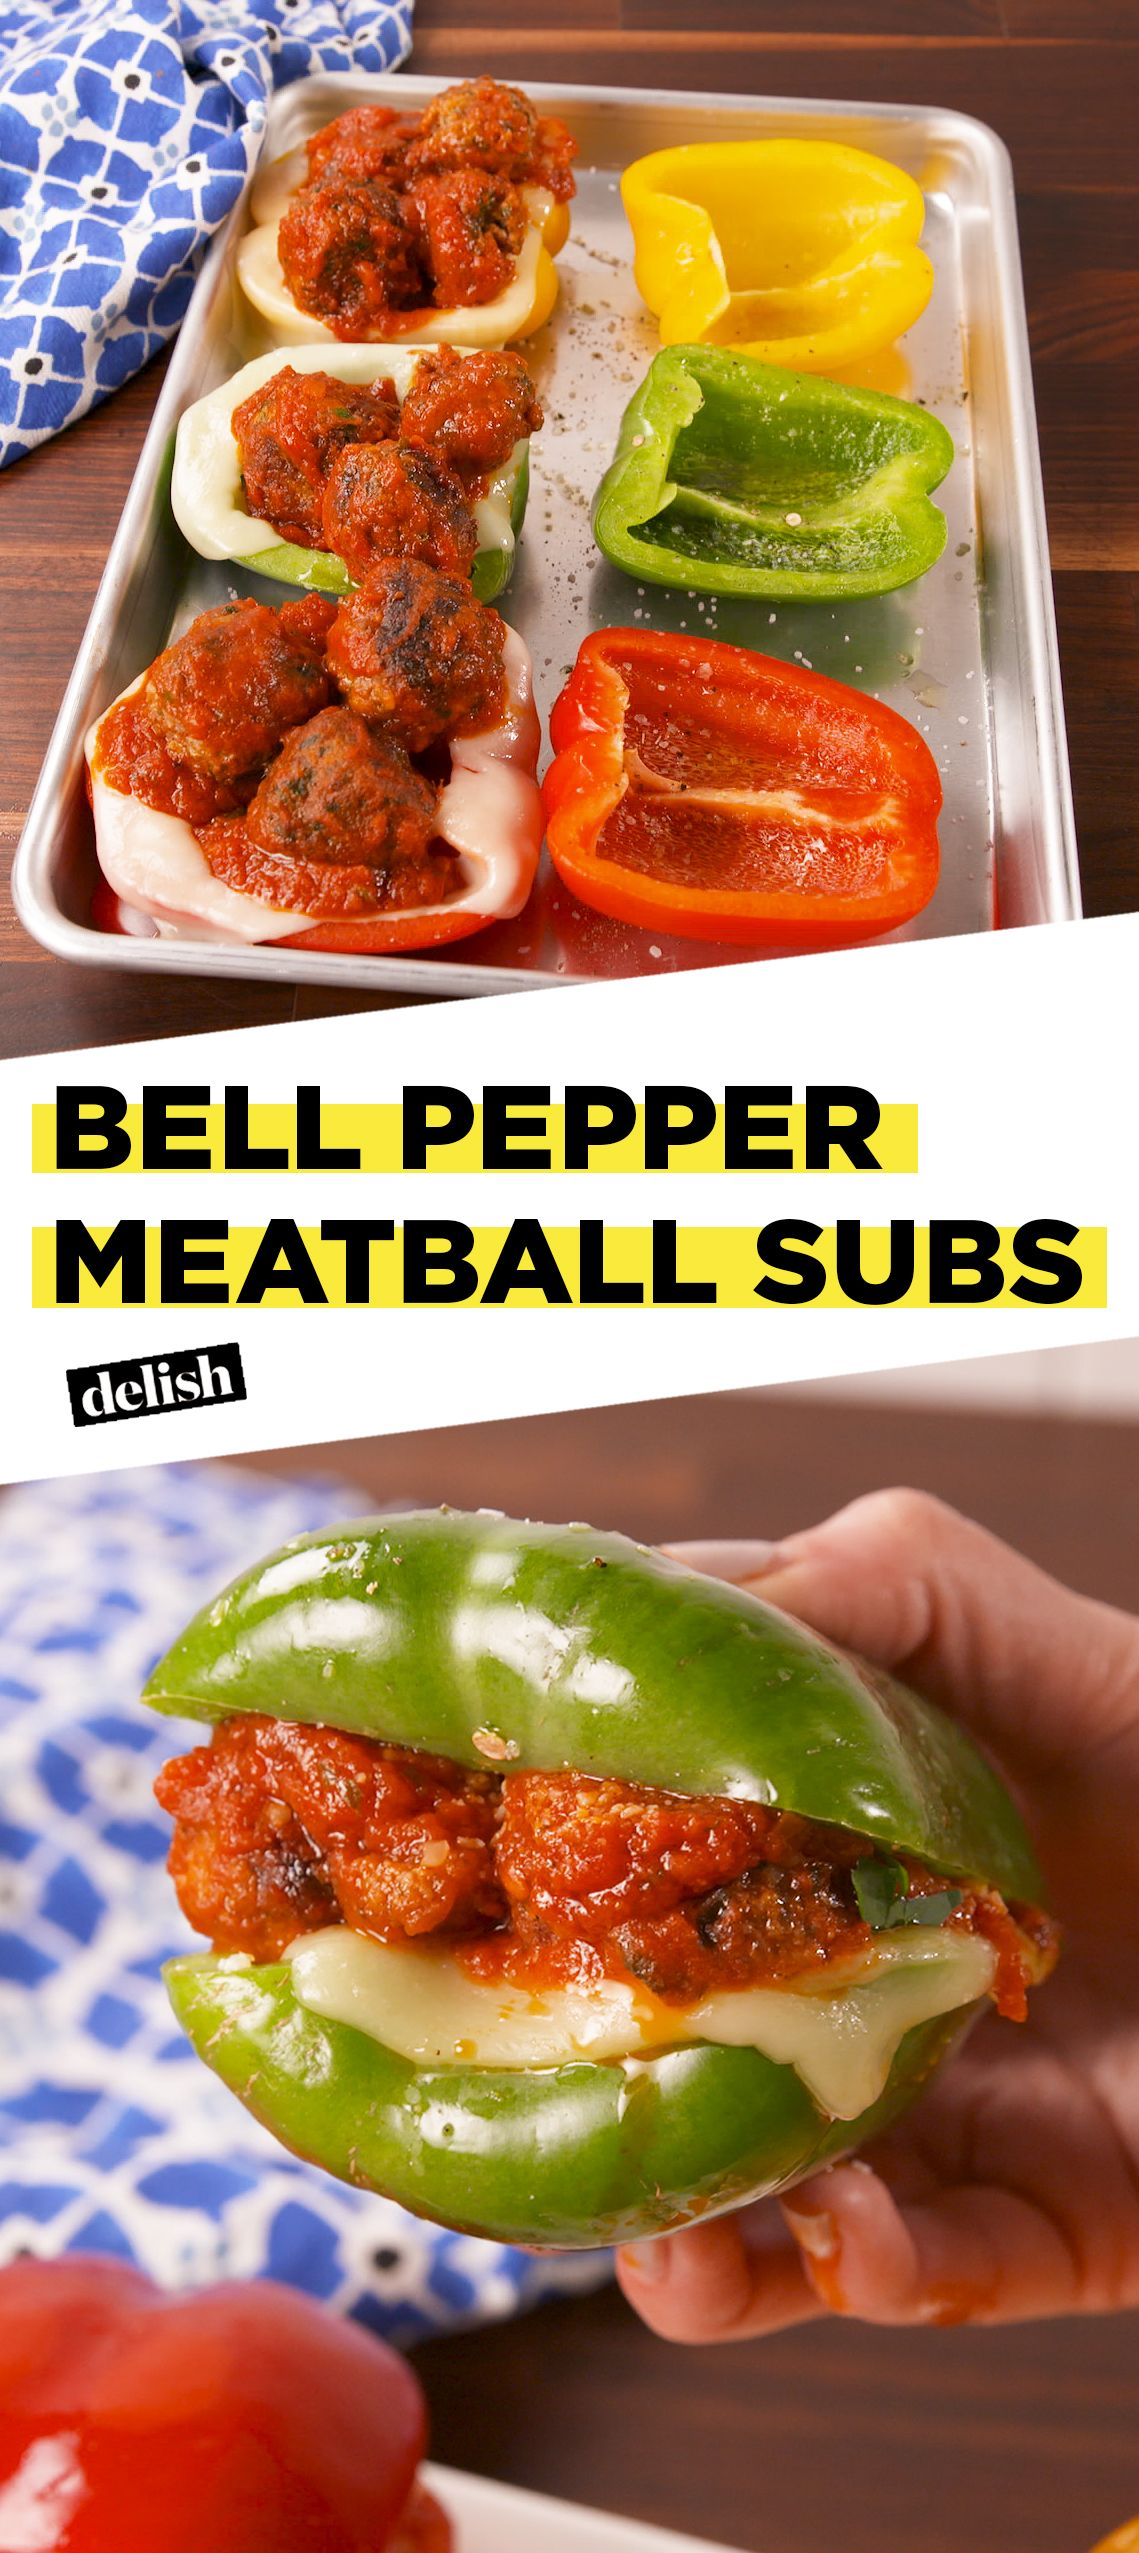 Bell Pepper Meatball Subs Recipe Diet Recipes Healthy Recipes Stuffed Peppers